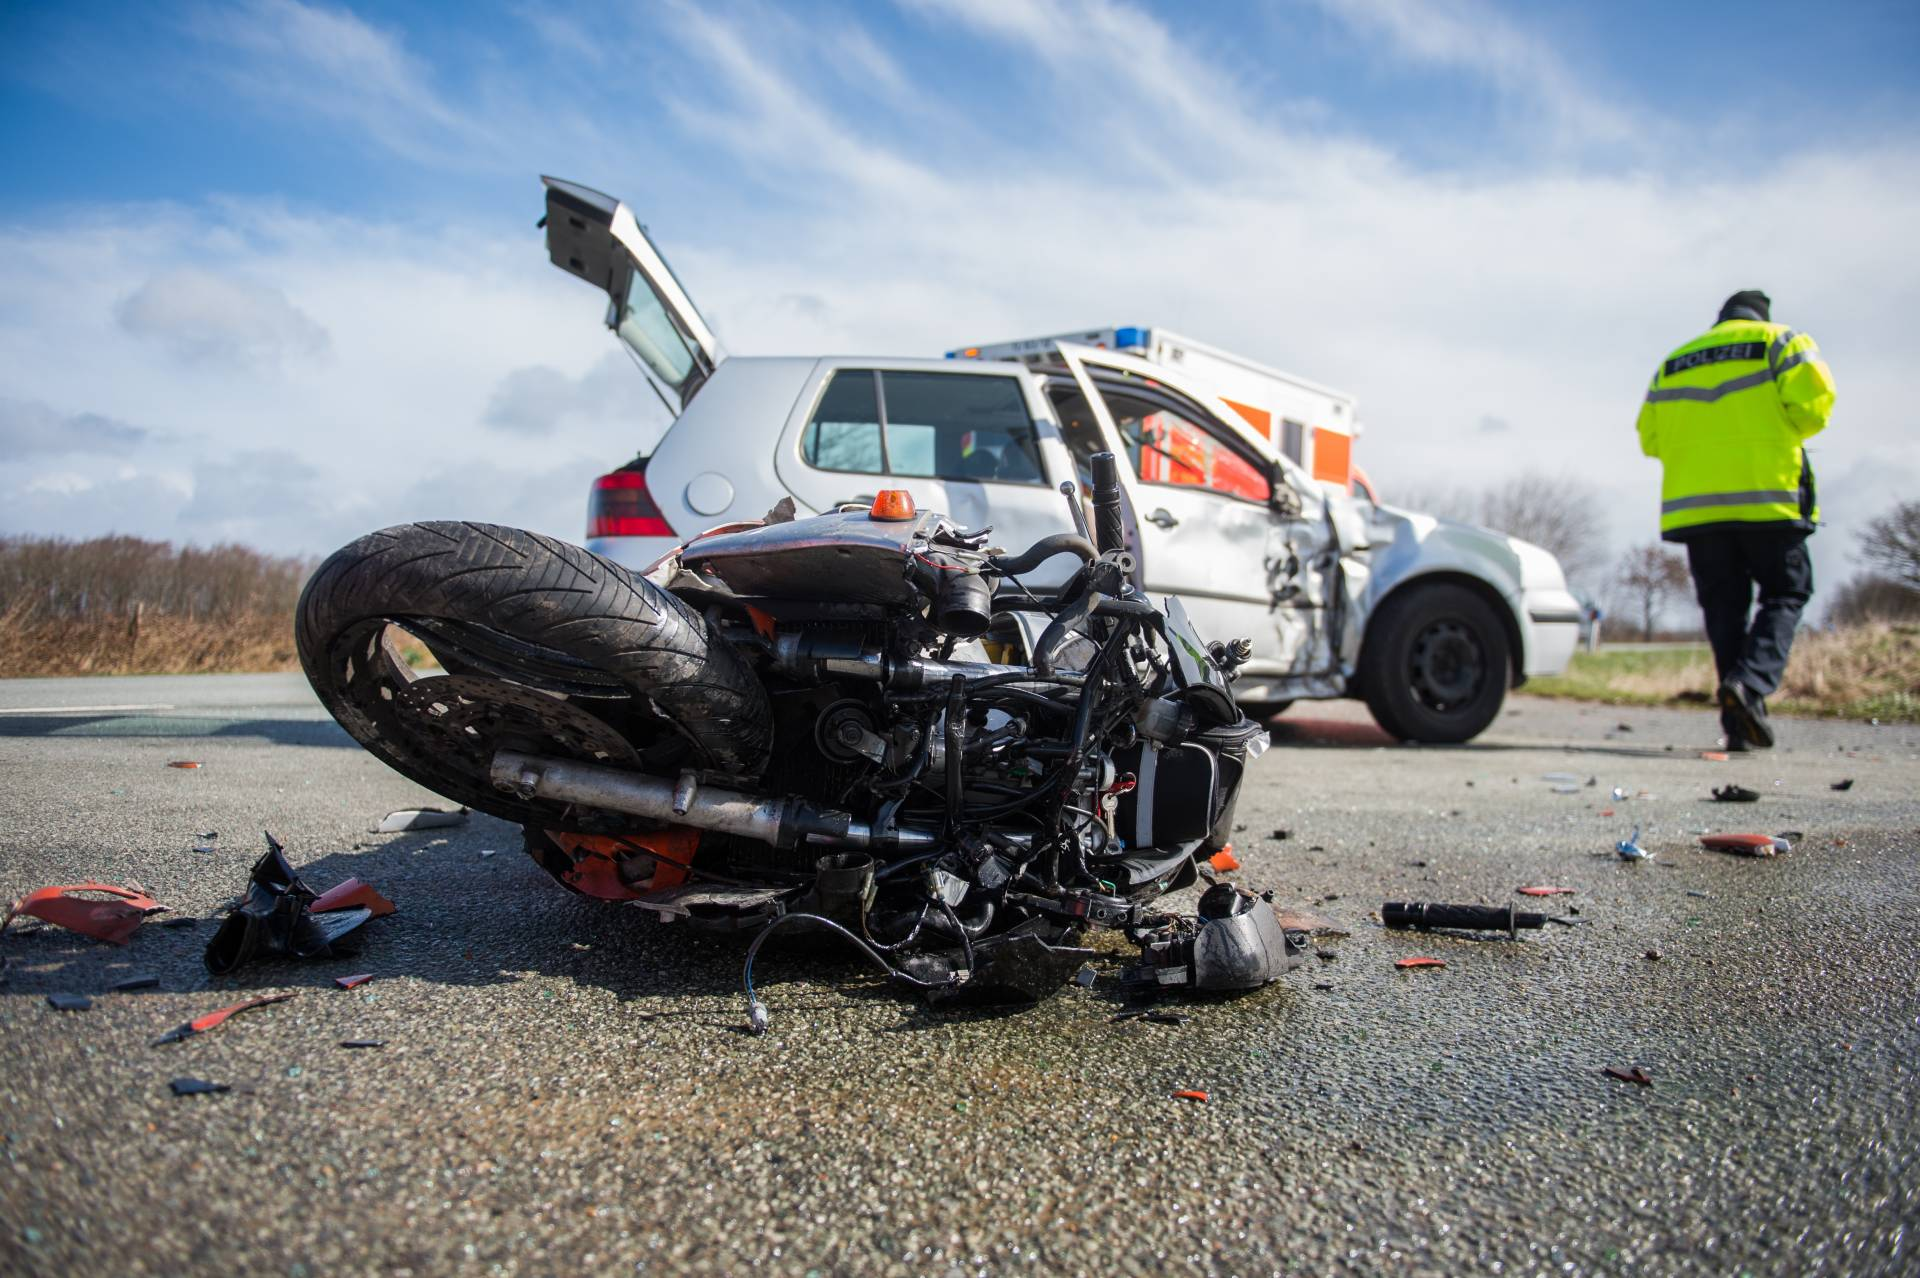 Need an Atlanta Motorcycle Accident Lawyer to go up against the insurance companies. Contact us today!